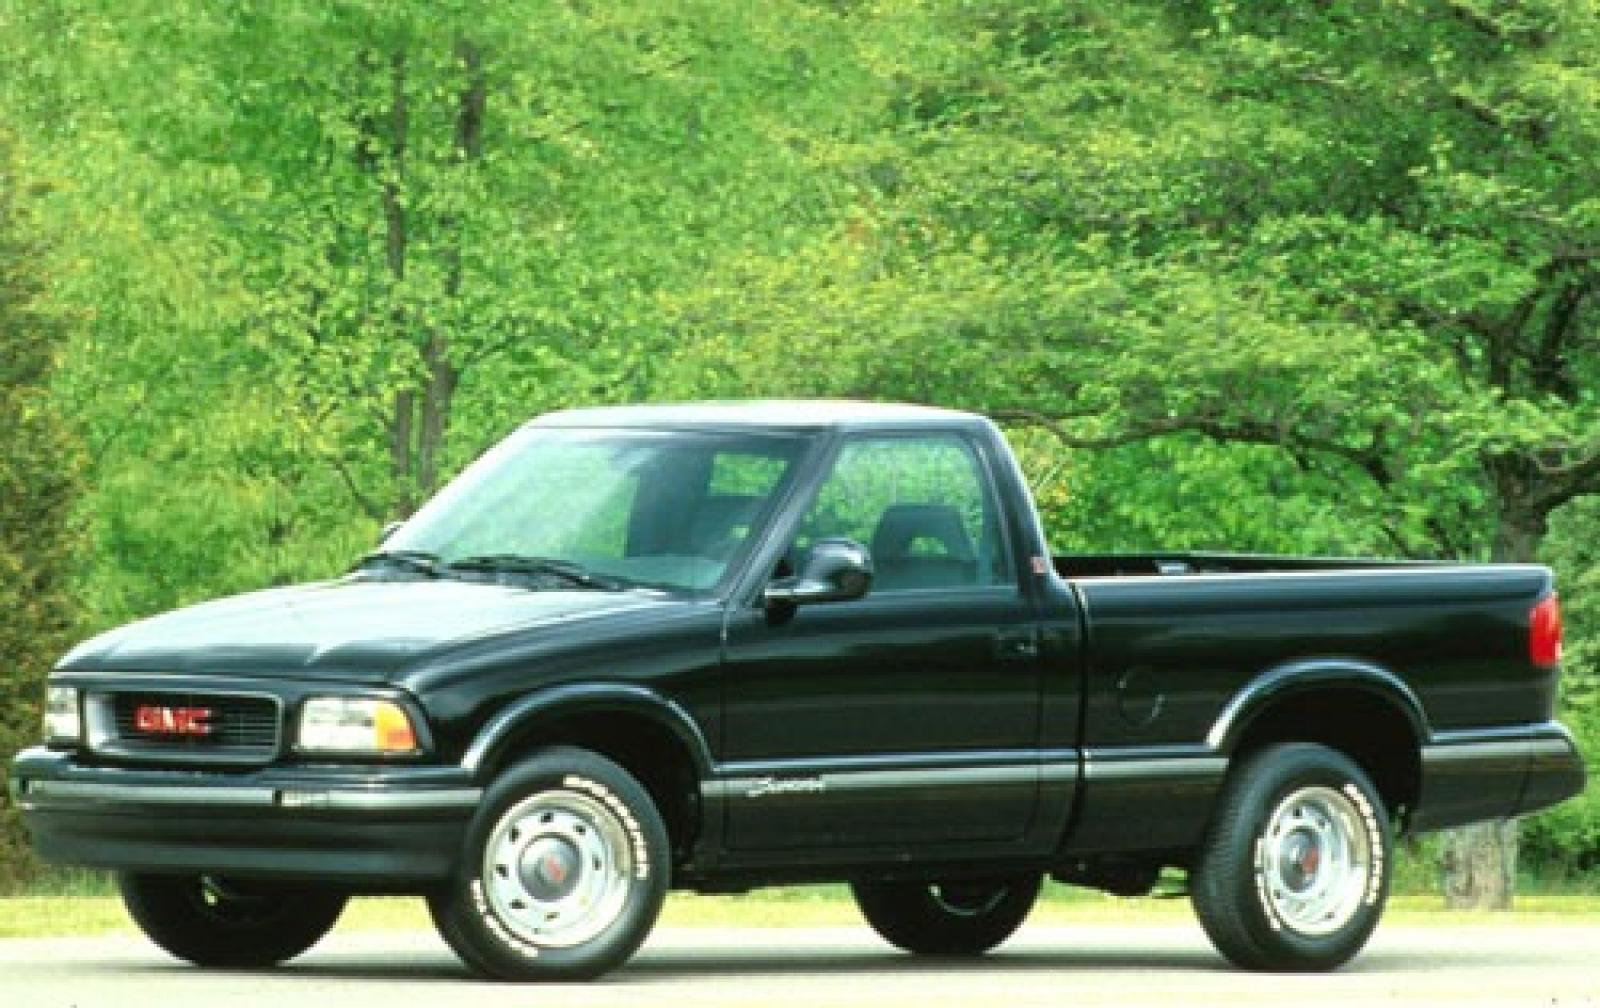 Wiring Diagram 92 Chevy Pickup Simple Ford Tempo Cavalier Nissan